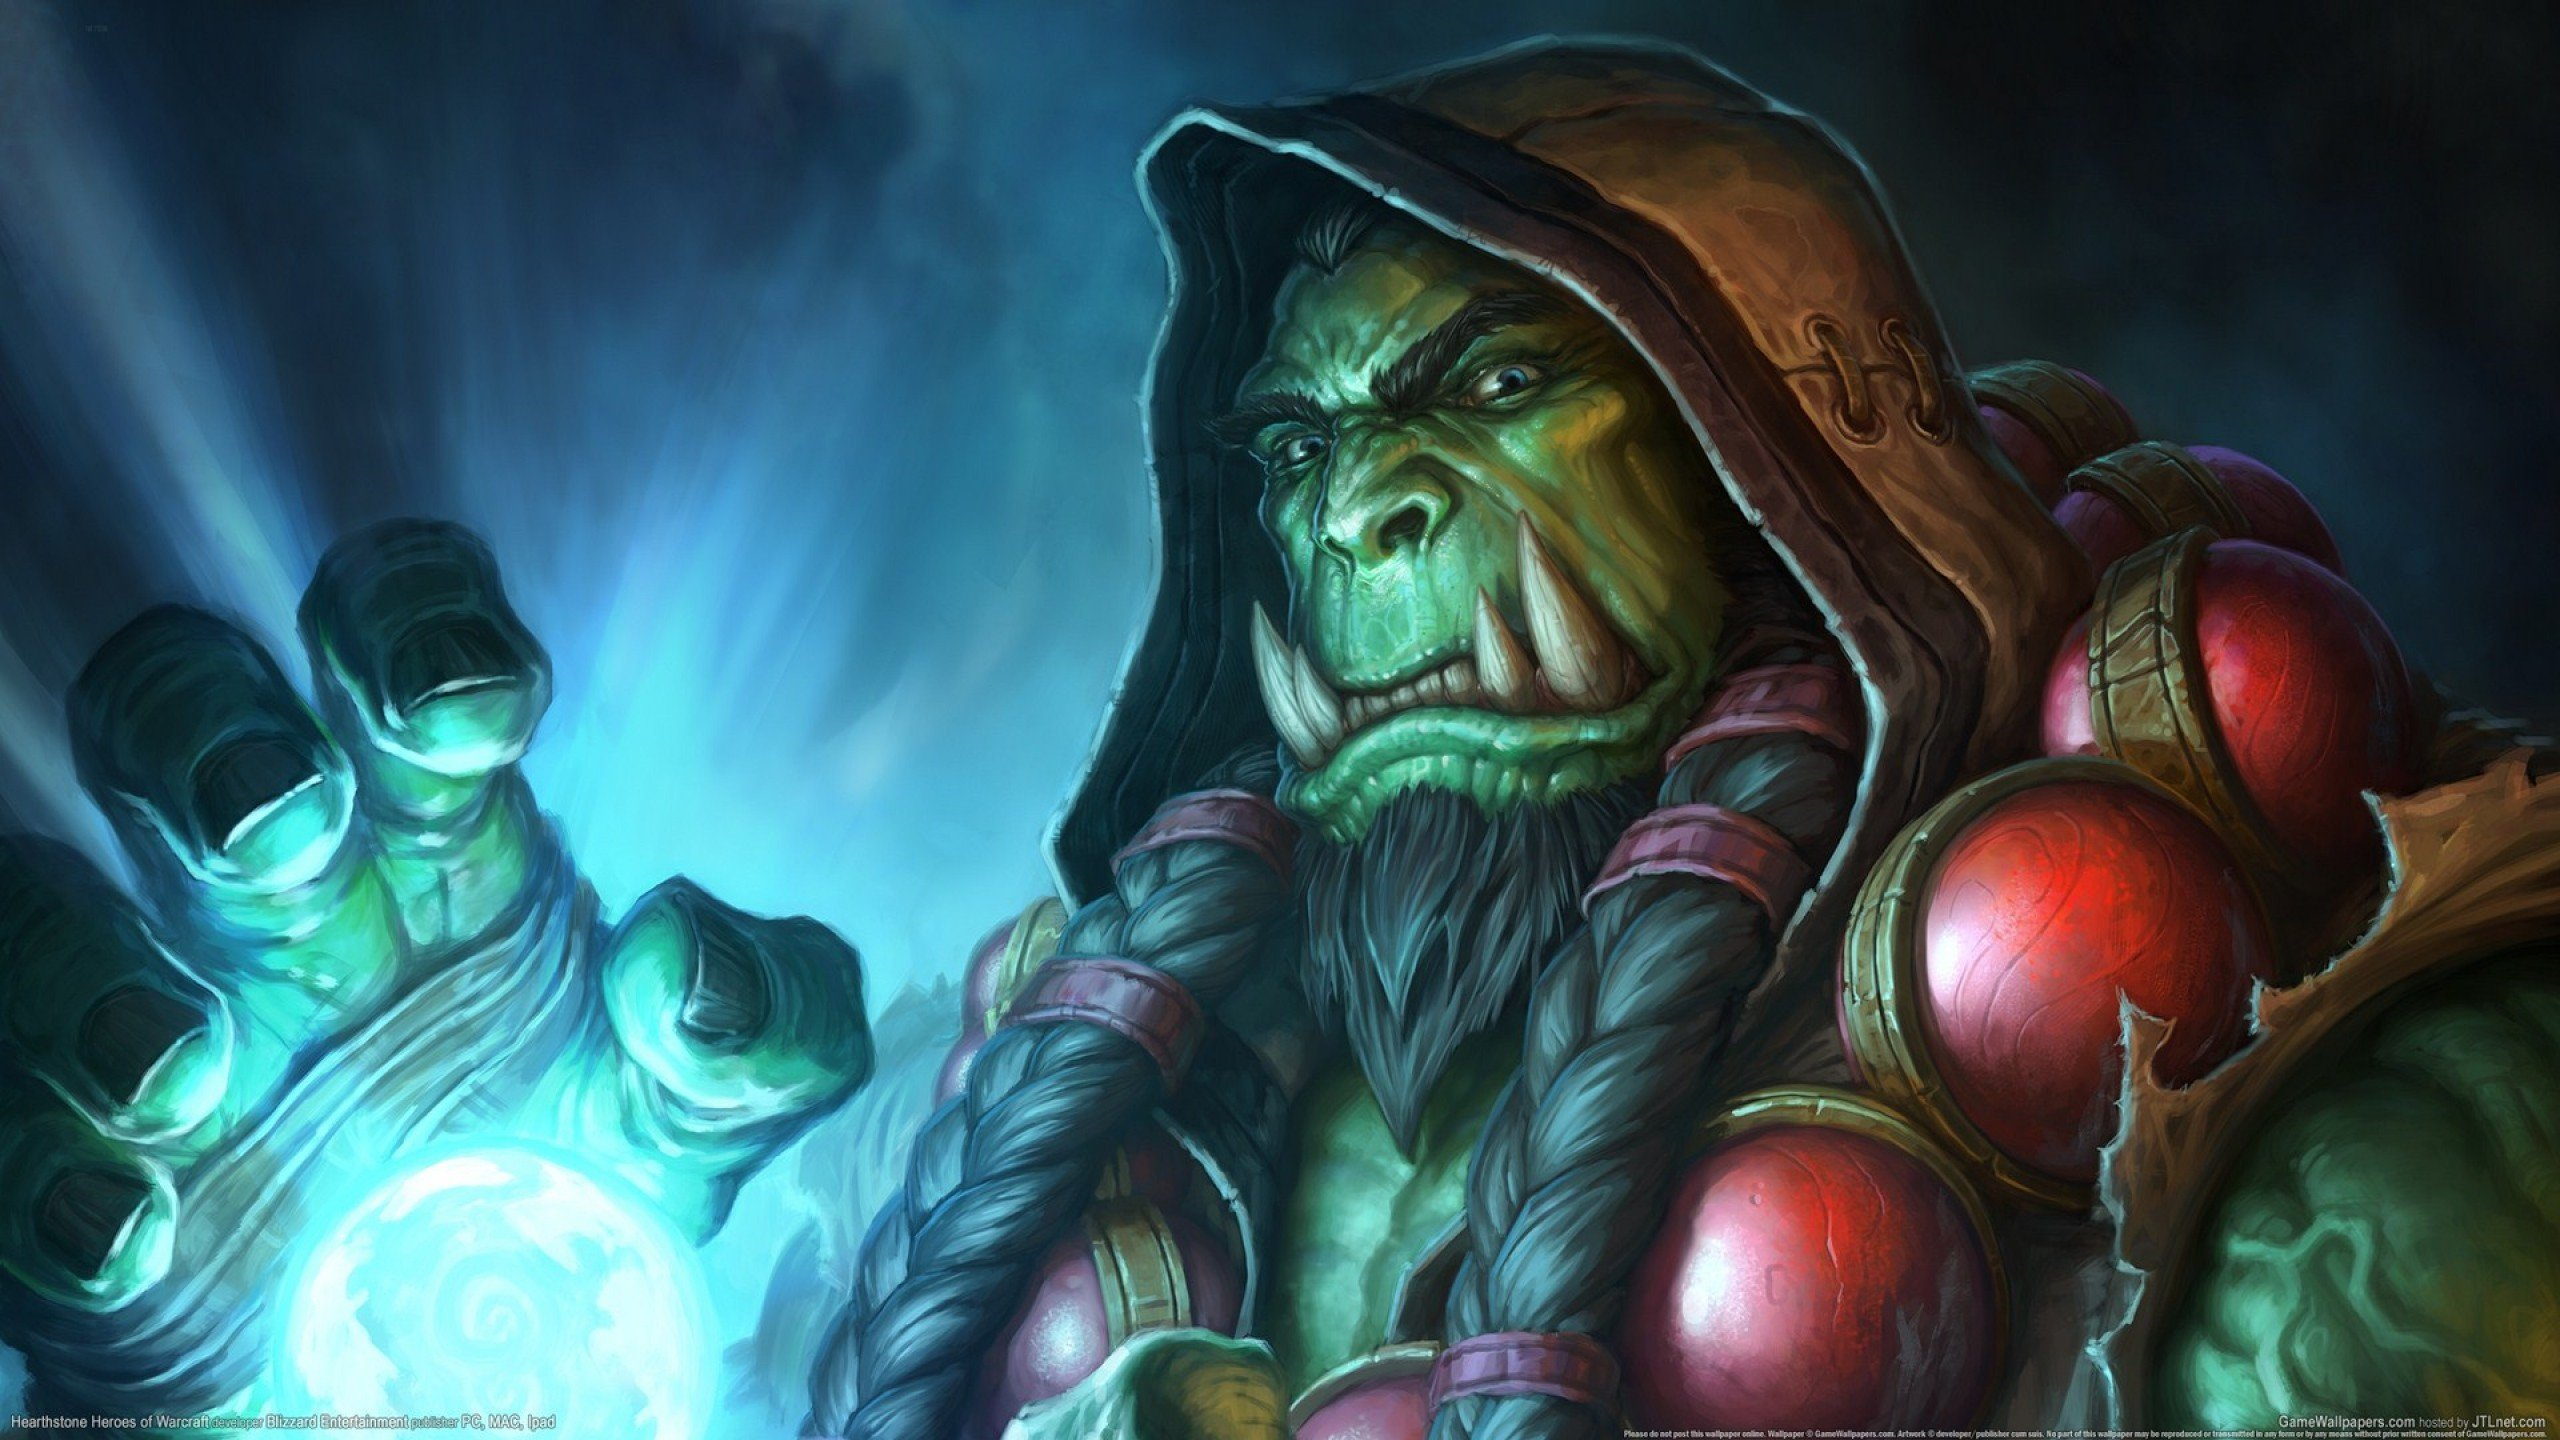 Hearthstone: Heroes of Warcraft, Thrall